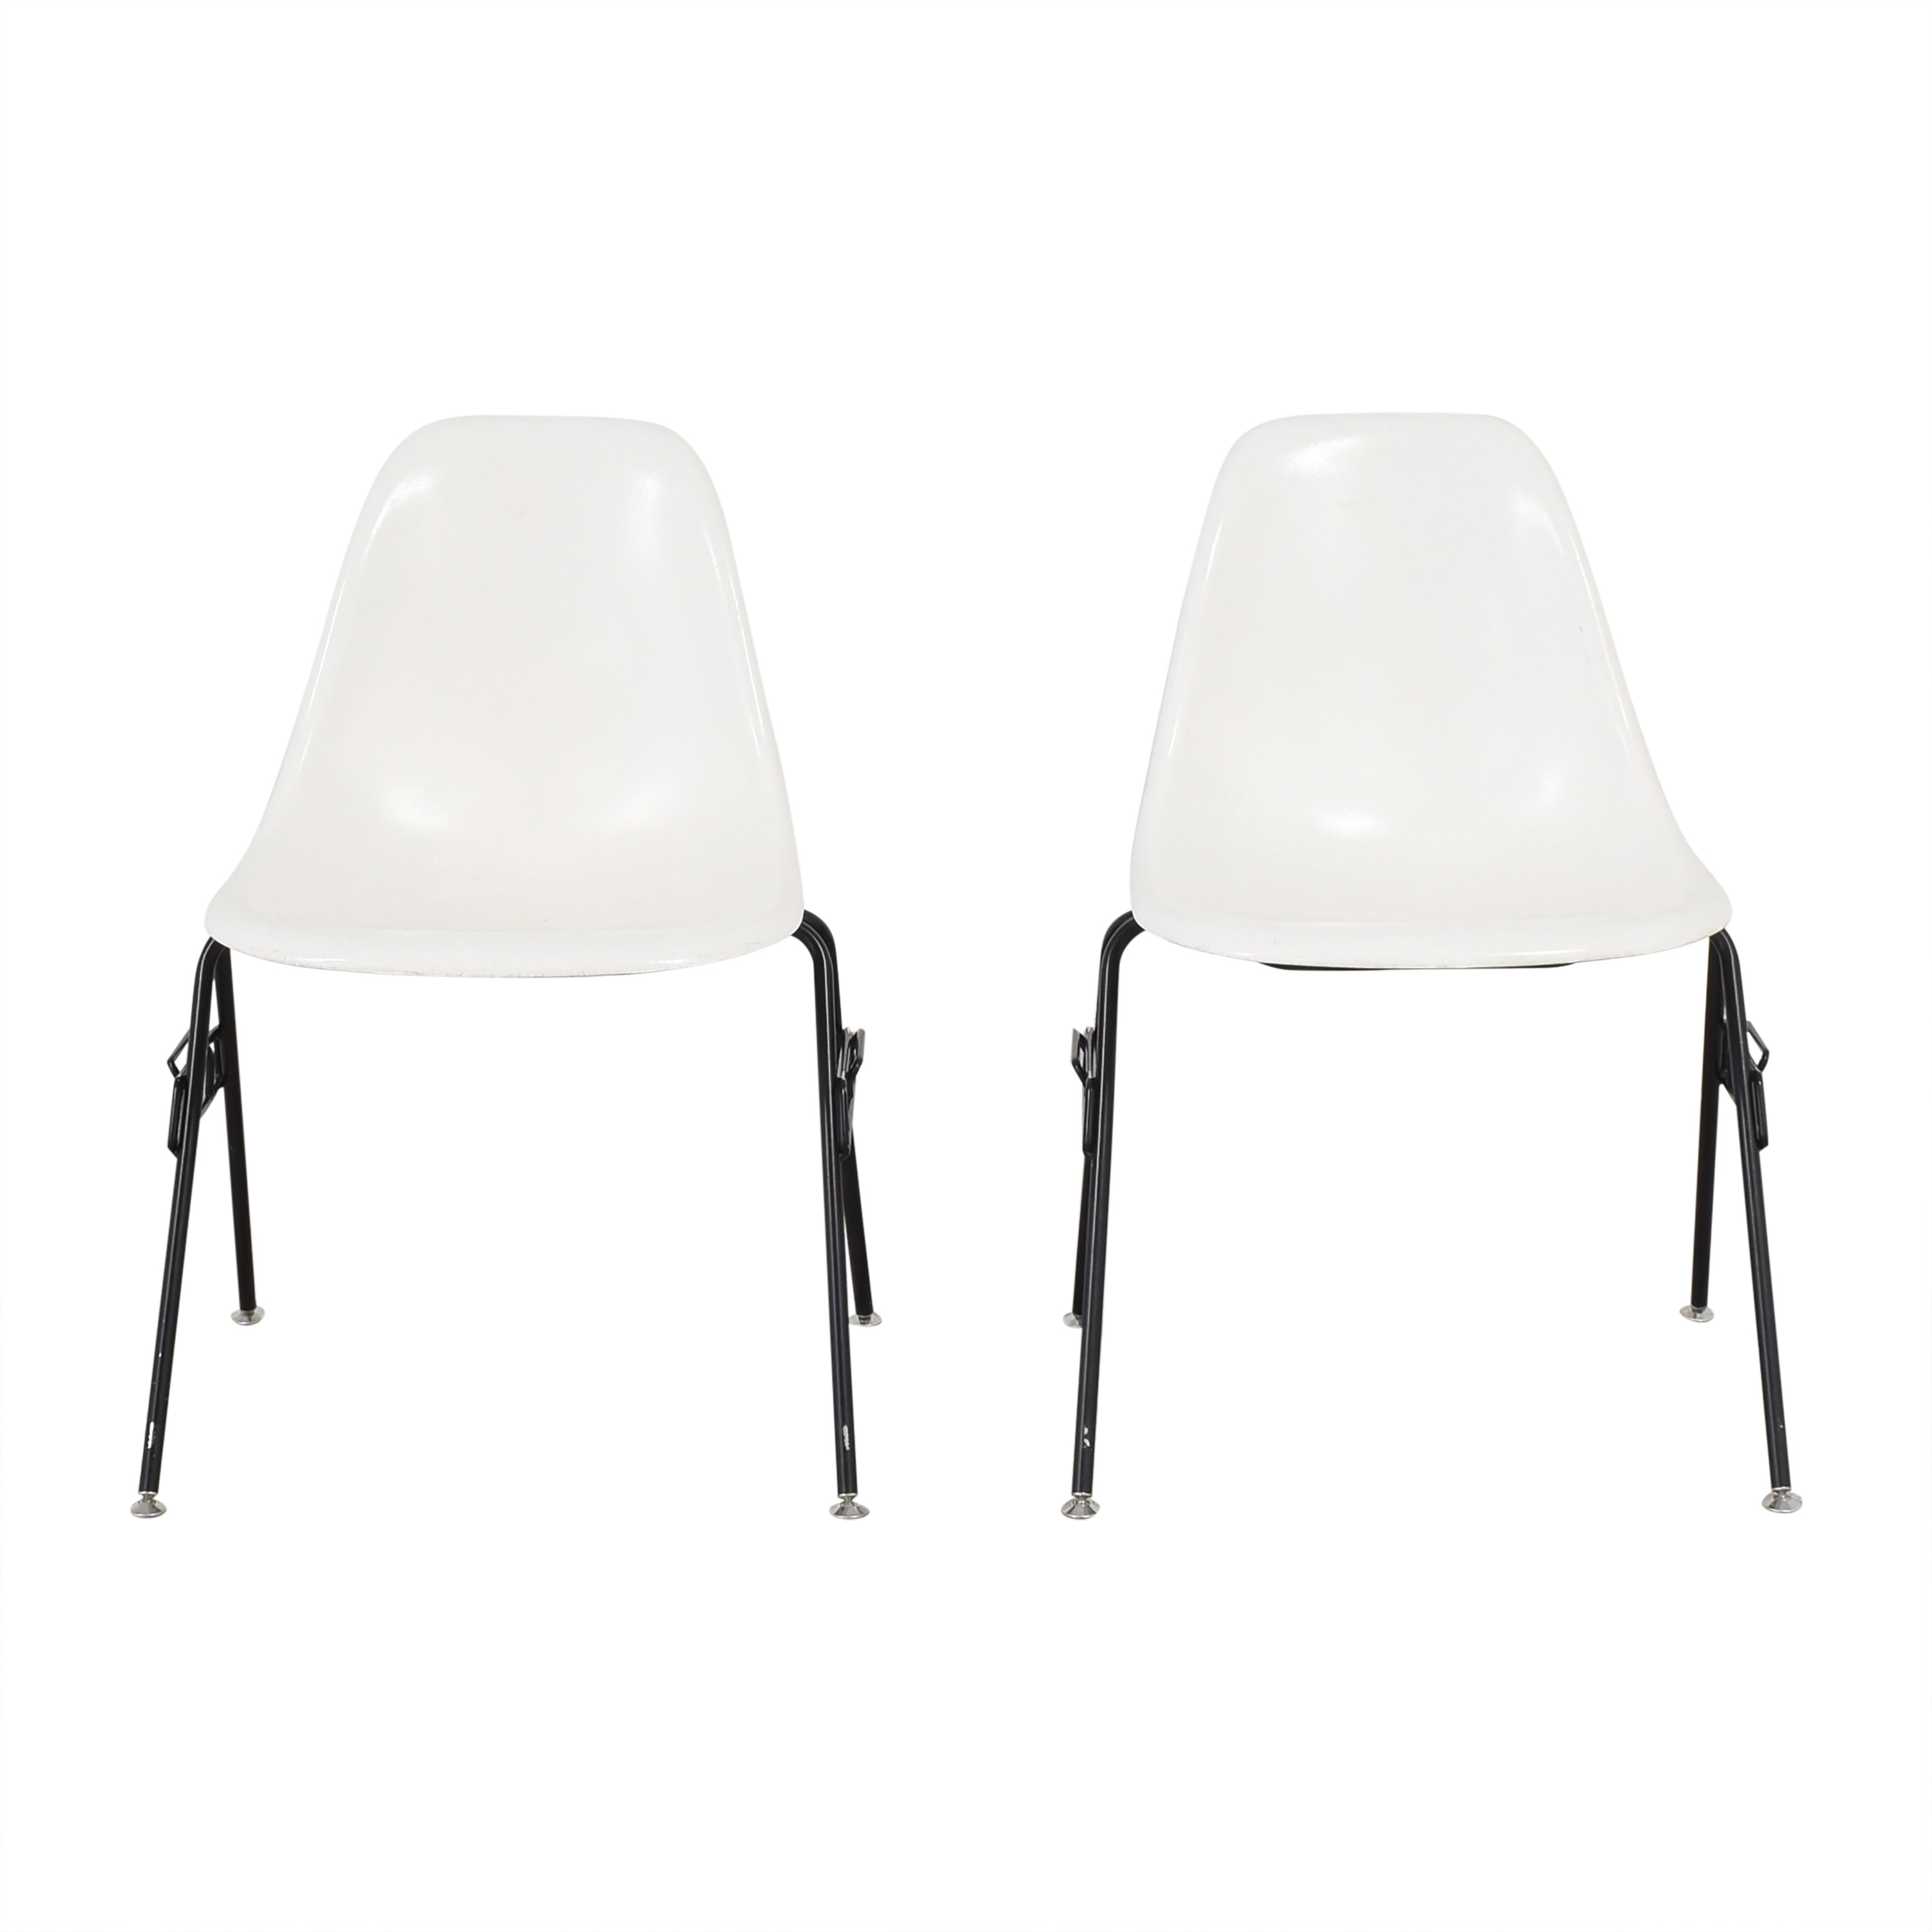 Modernica Modernica Case Study Furniture Side Shell Stacking Chairs Dining Chairs